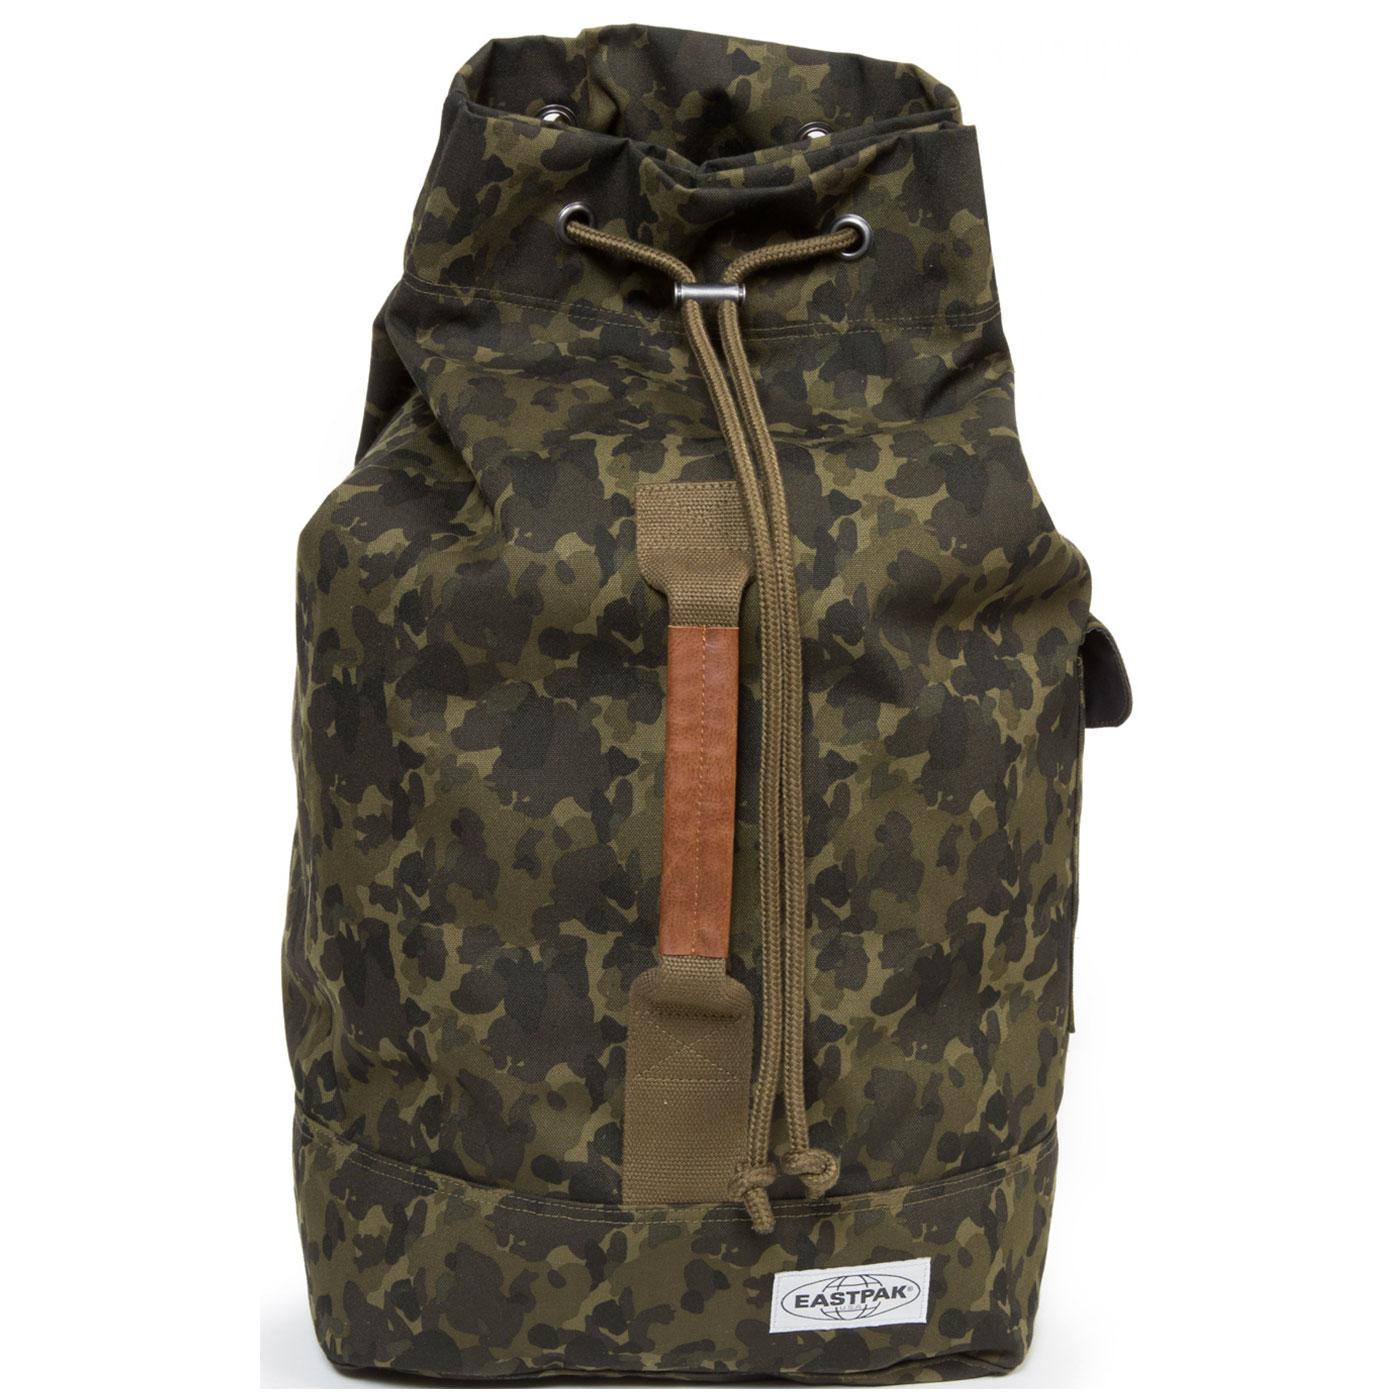 EASTPAK Plister Authentic Military Duffle Bag (OC)